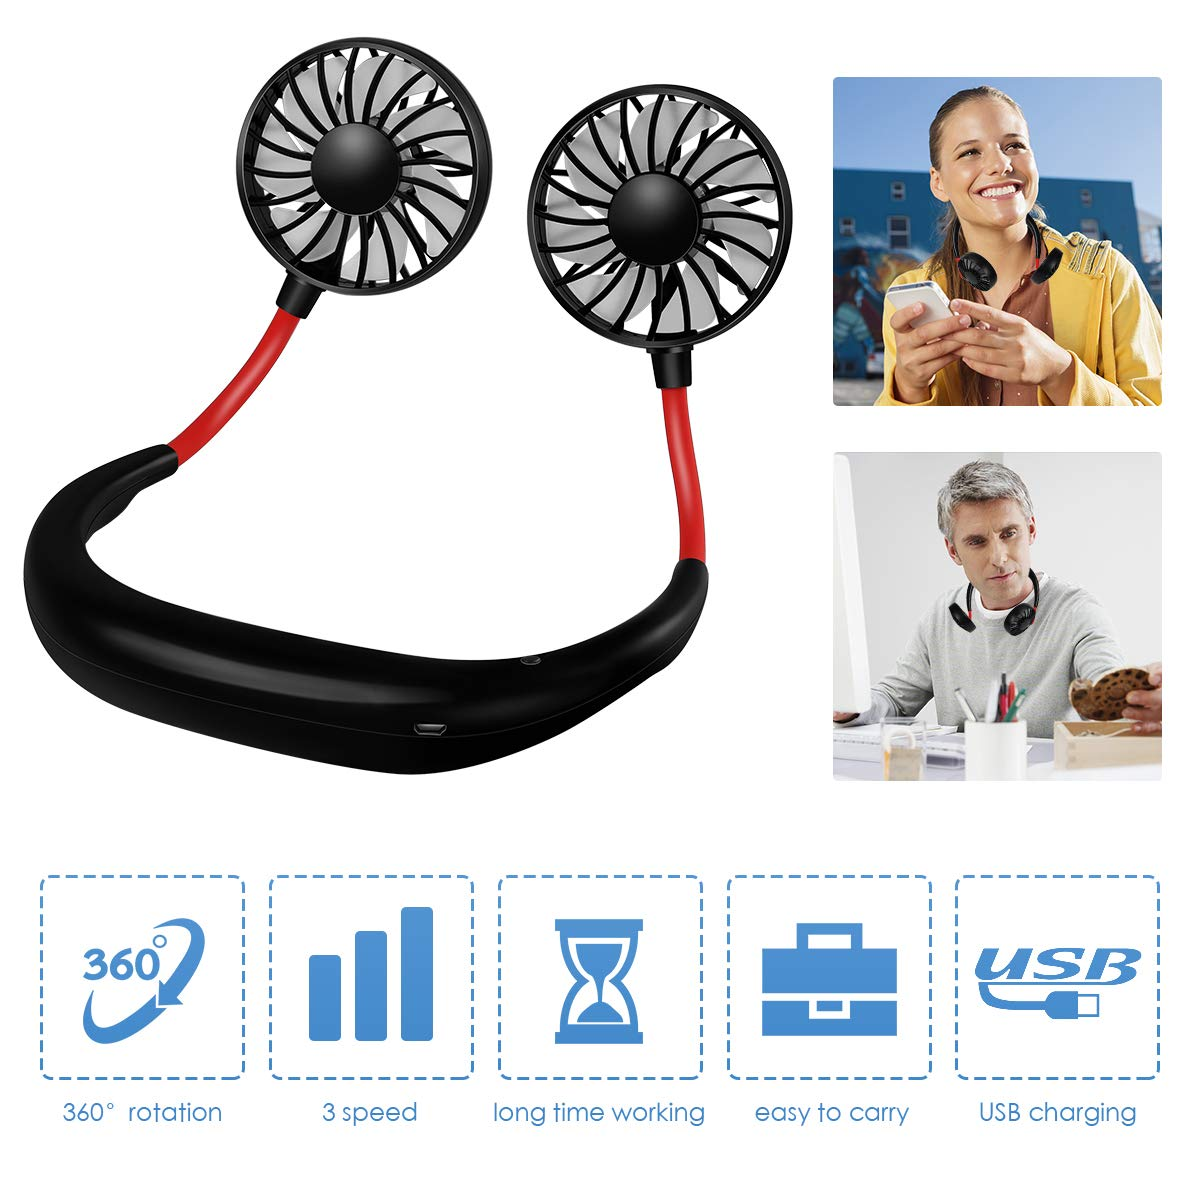 Portable Fan Mini USB FanHand Free Personal Fan Neckband Sport Fan Wearable Desktop Fan, 3 Speeds, USB Rechargeable, 360 Degree Adjustment for Home Office Outdoor Travel